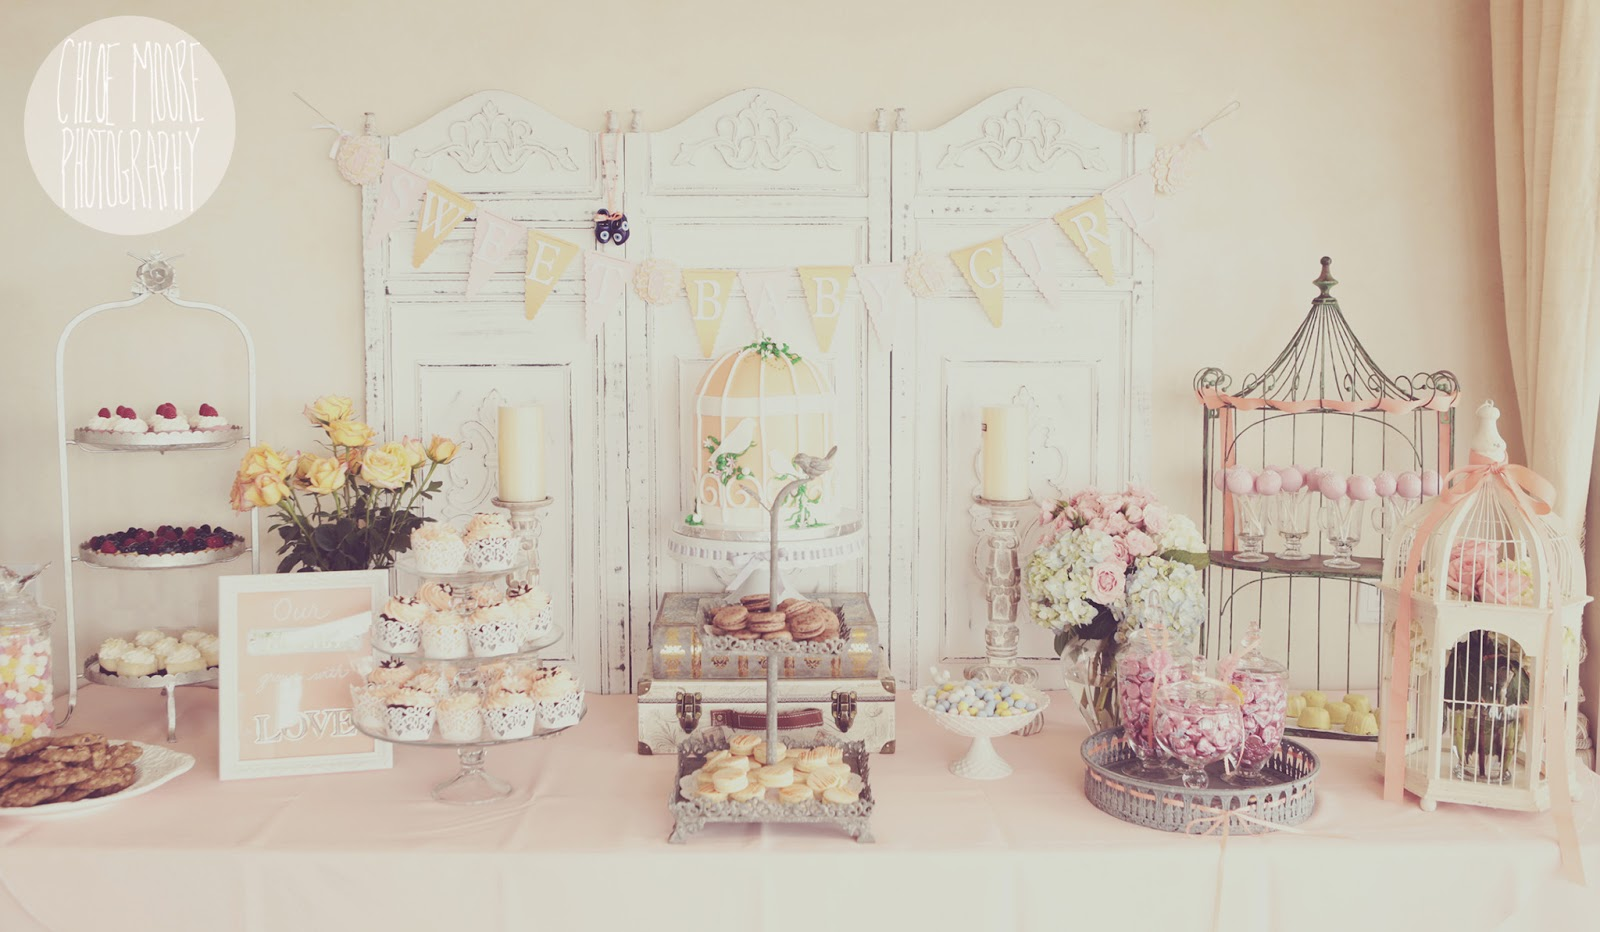 Chloe Moore Photography // The Blog: Mariam's Baby Shower ...